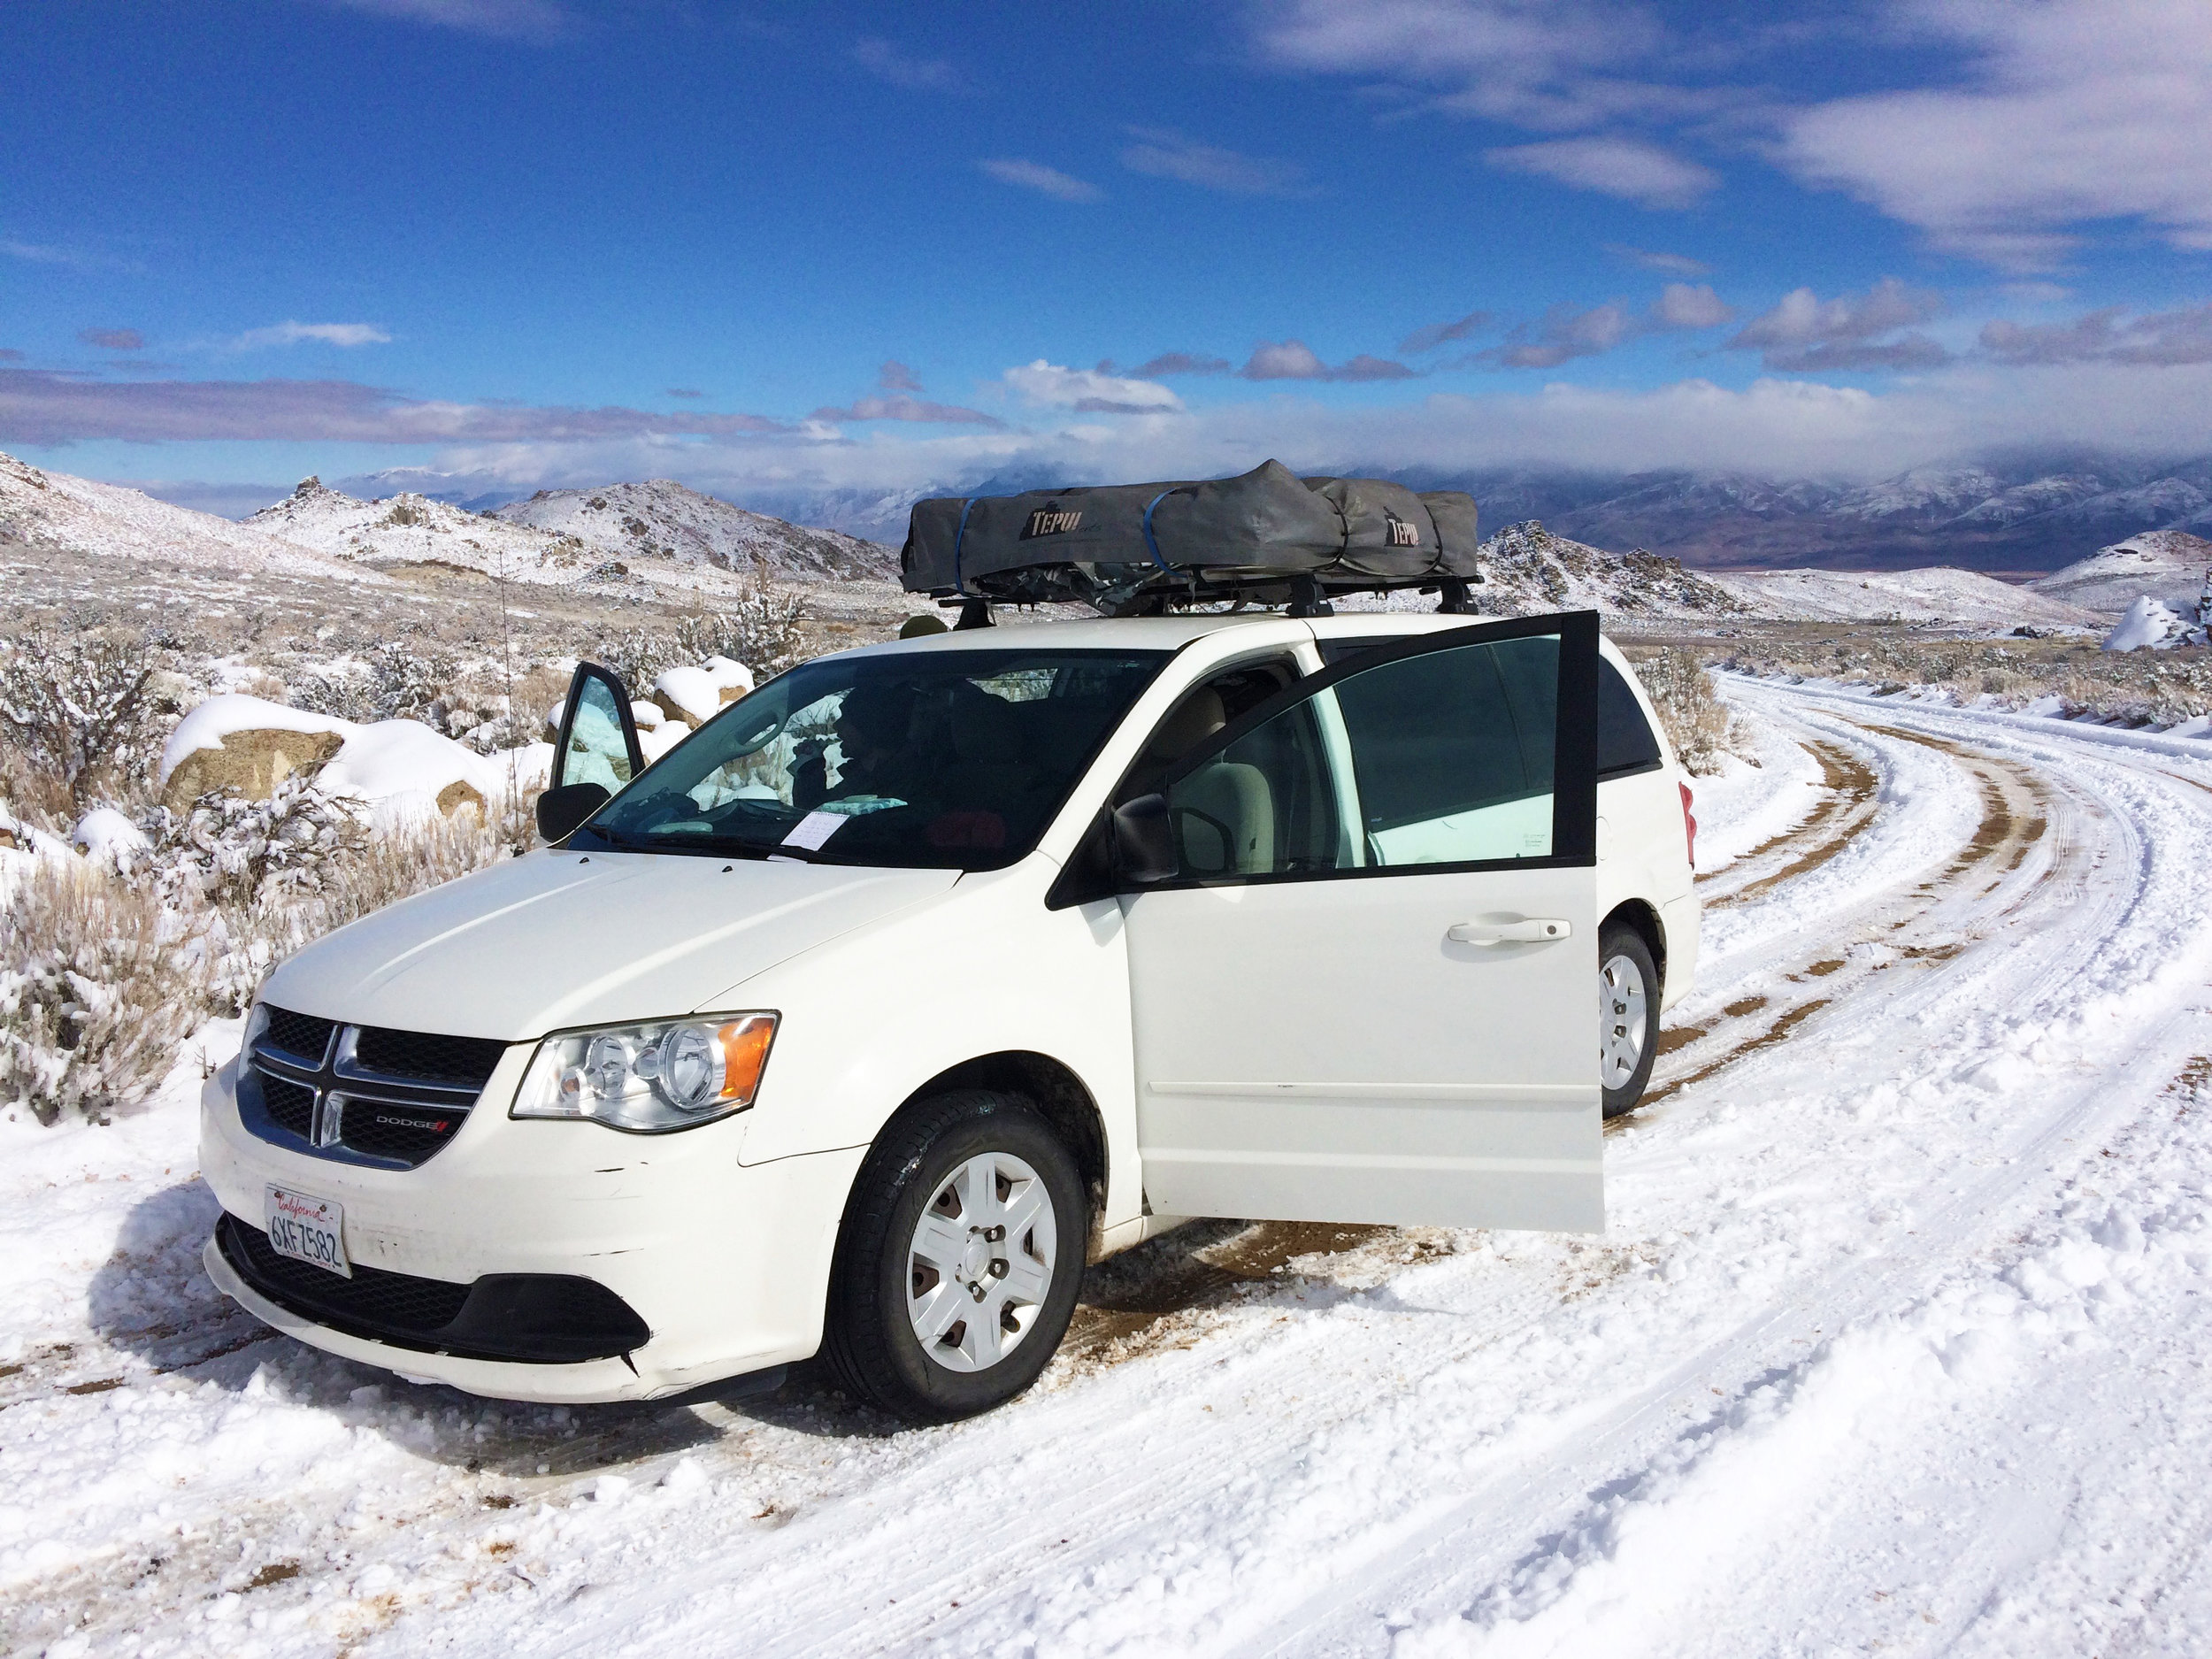 Our rental camper van out of LA, Rachel, was not equipped to handle the unexpected snowfall and she got stuck on Buttermilk Rd. We parked her there and hoofed it the rest of the way in!